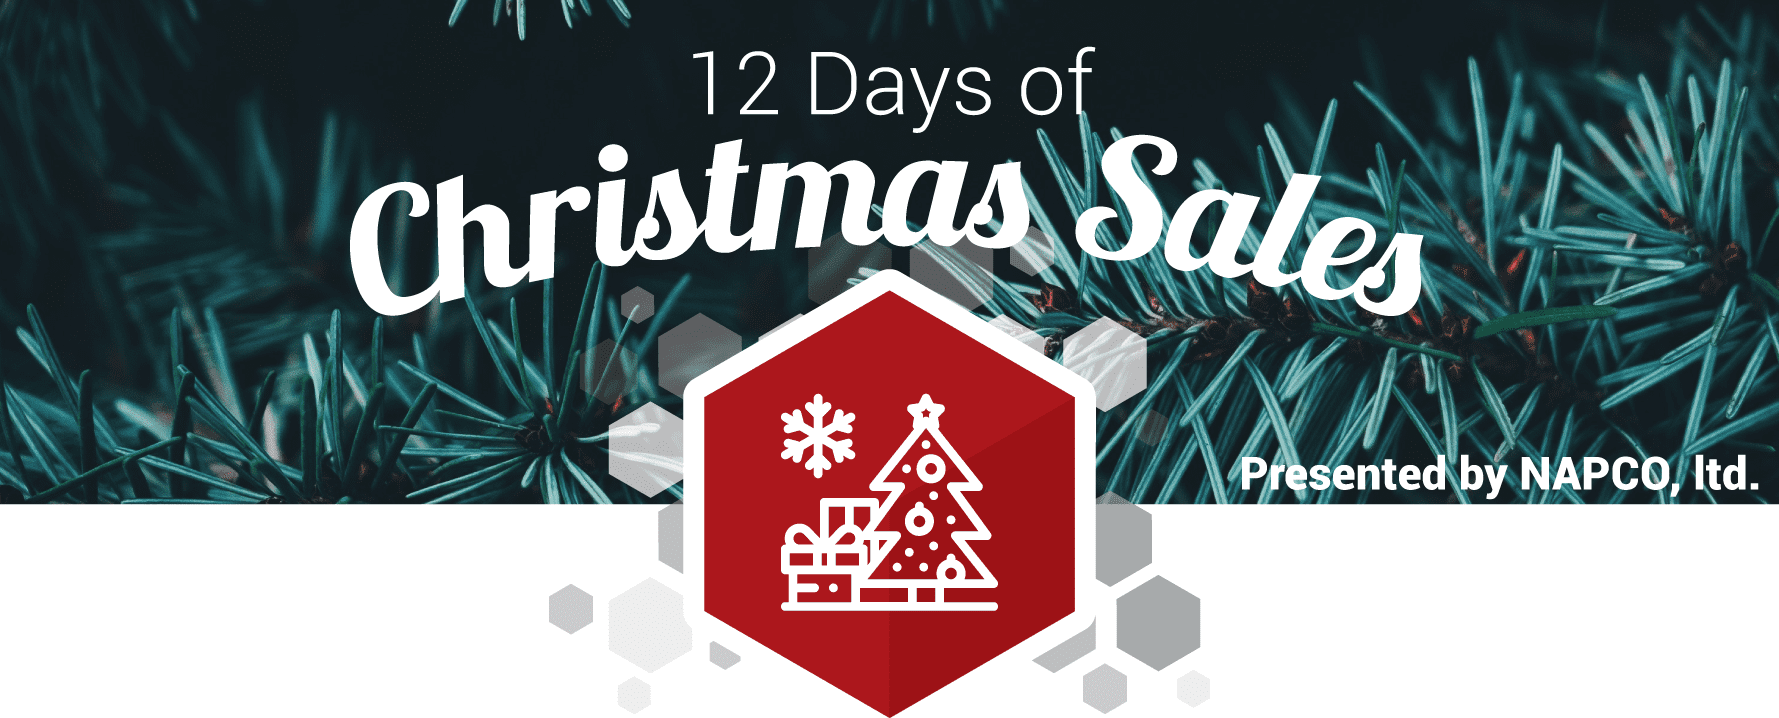 NAPCO 12 Days of Christmas Sale